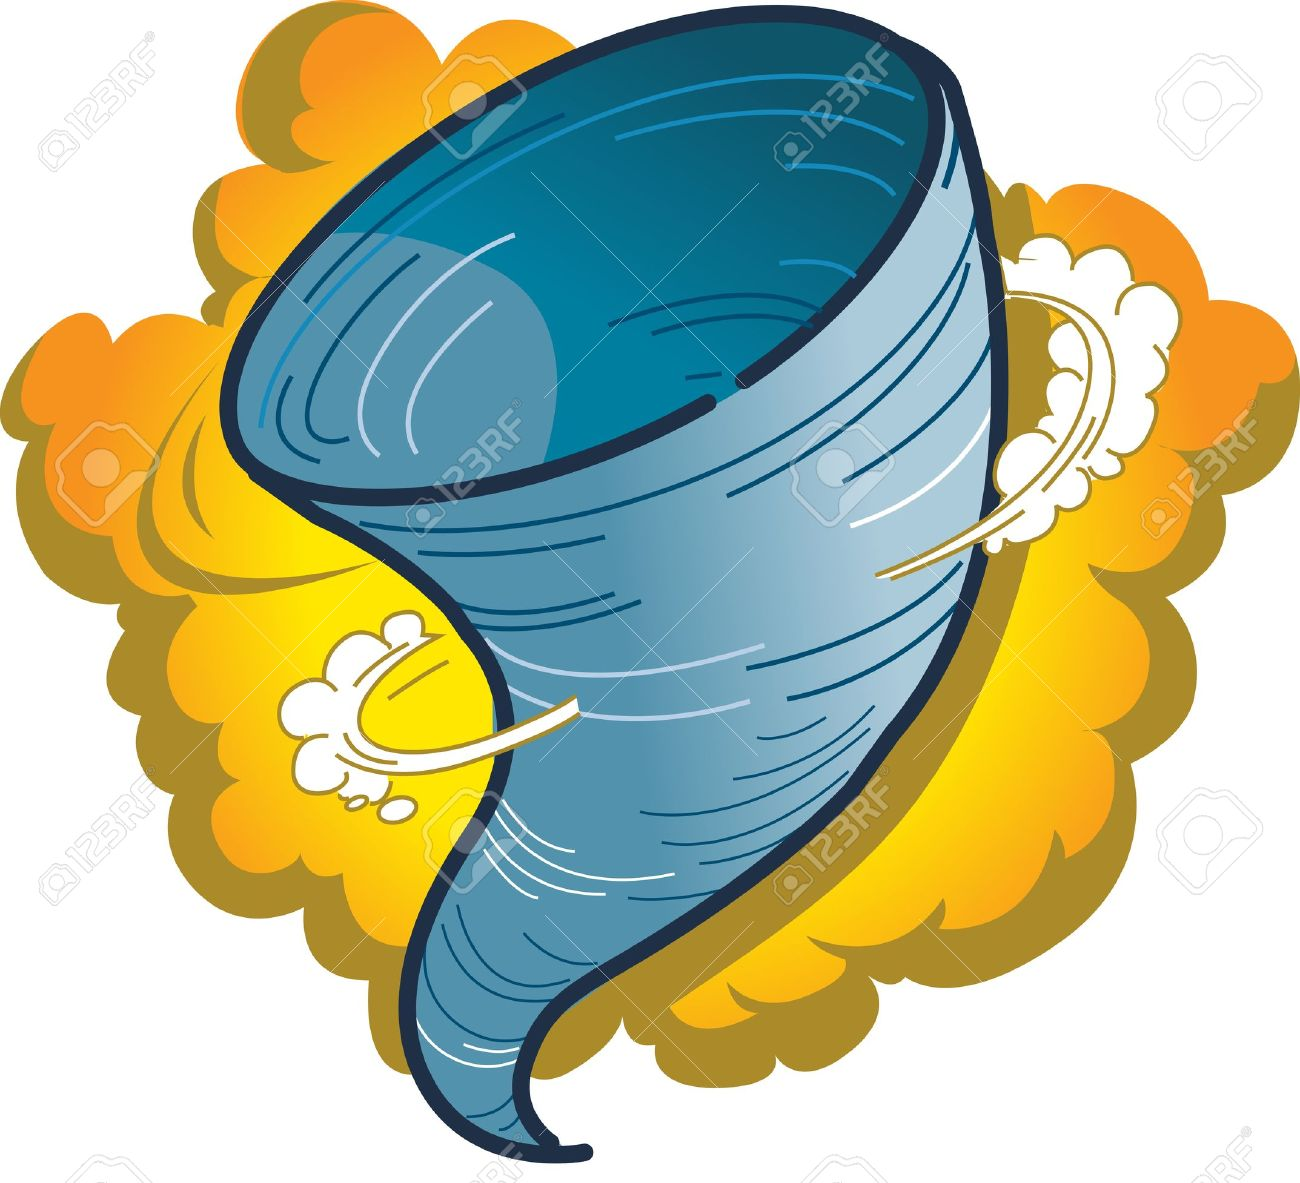 Hurricane clipart cartoon. Animated cliparts free download